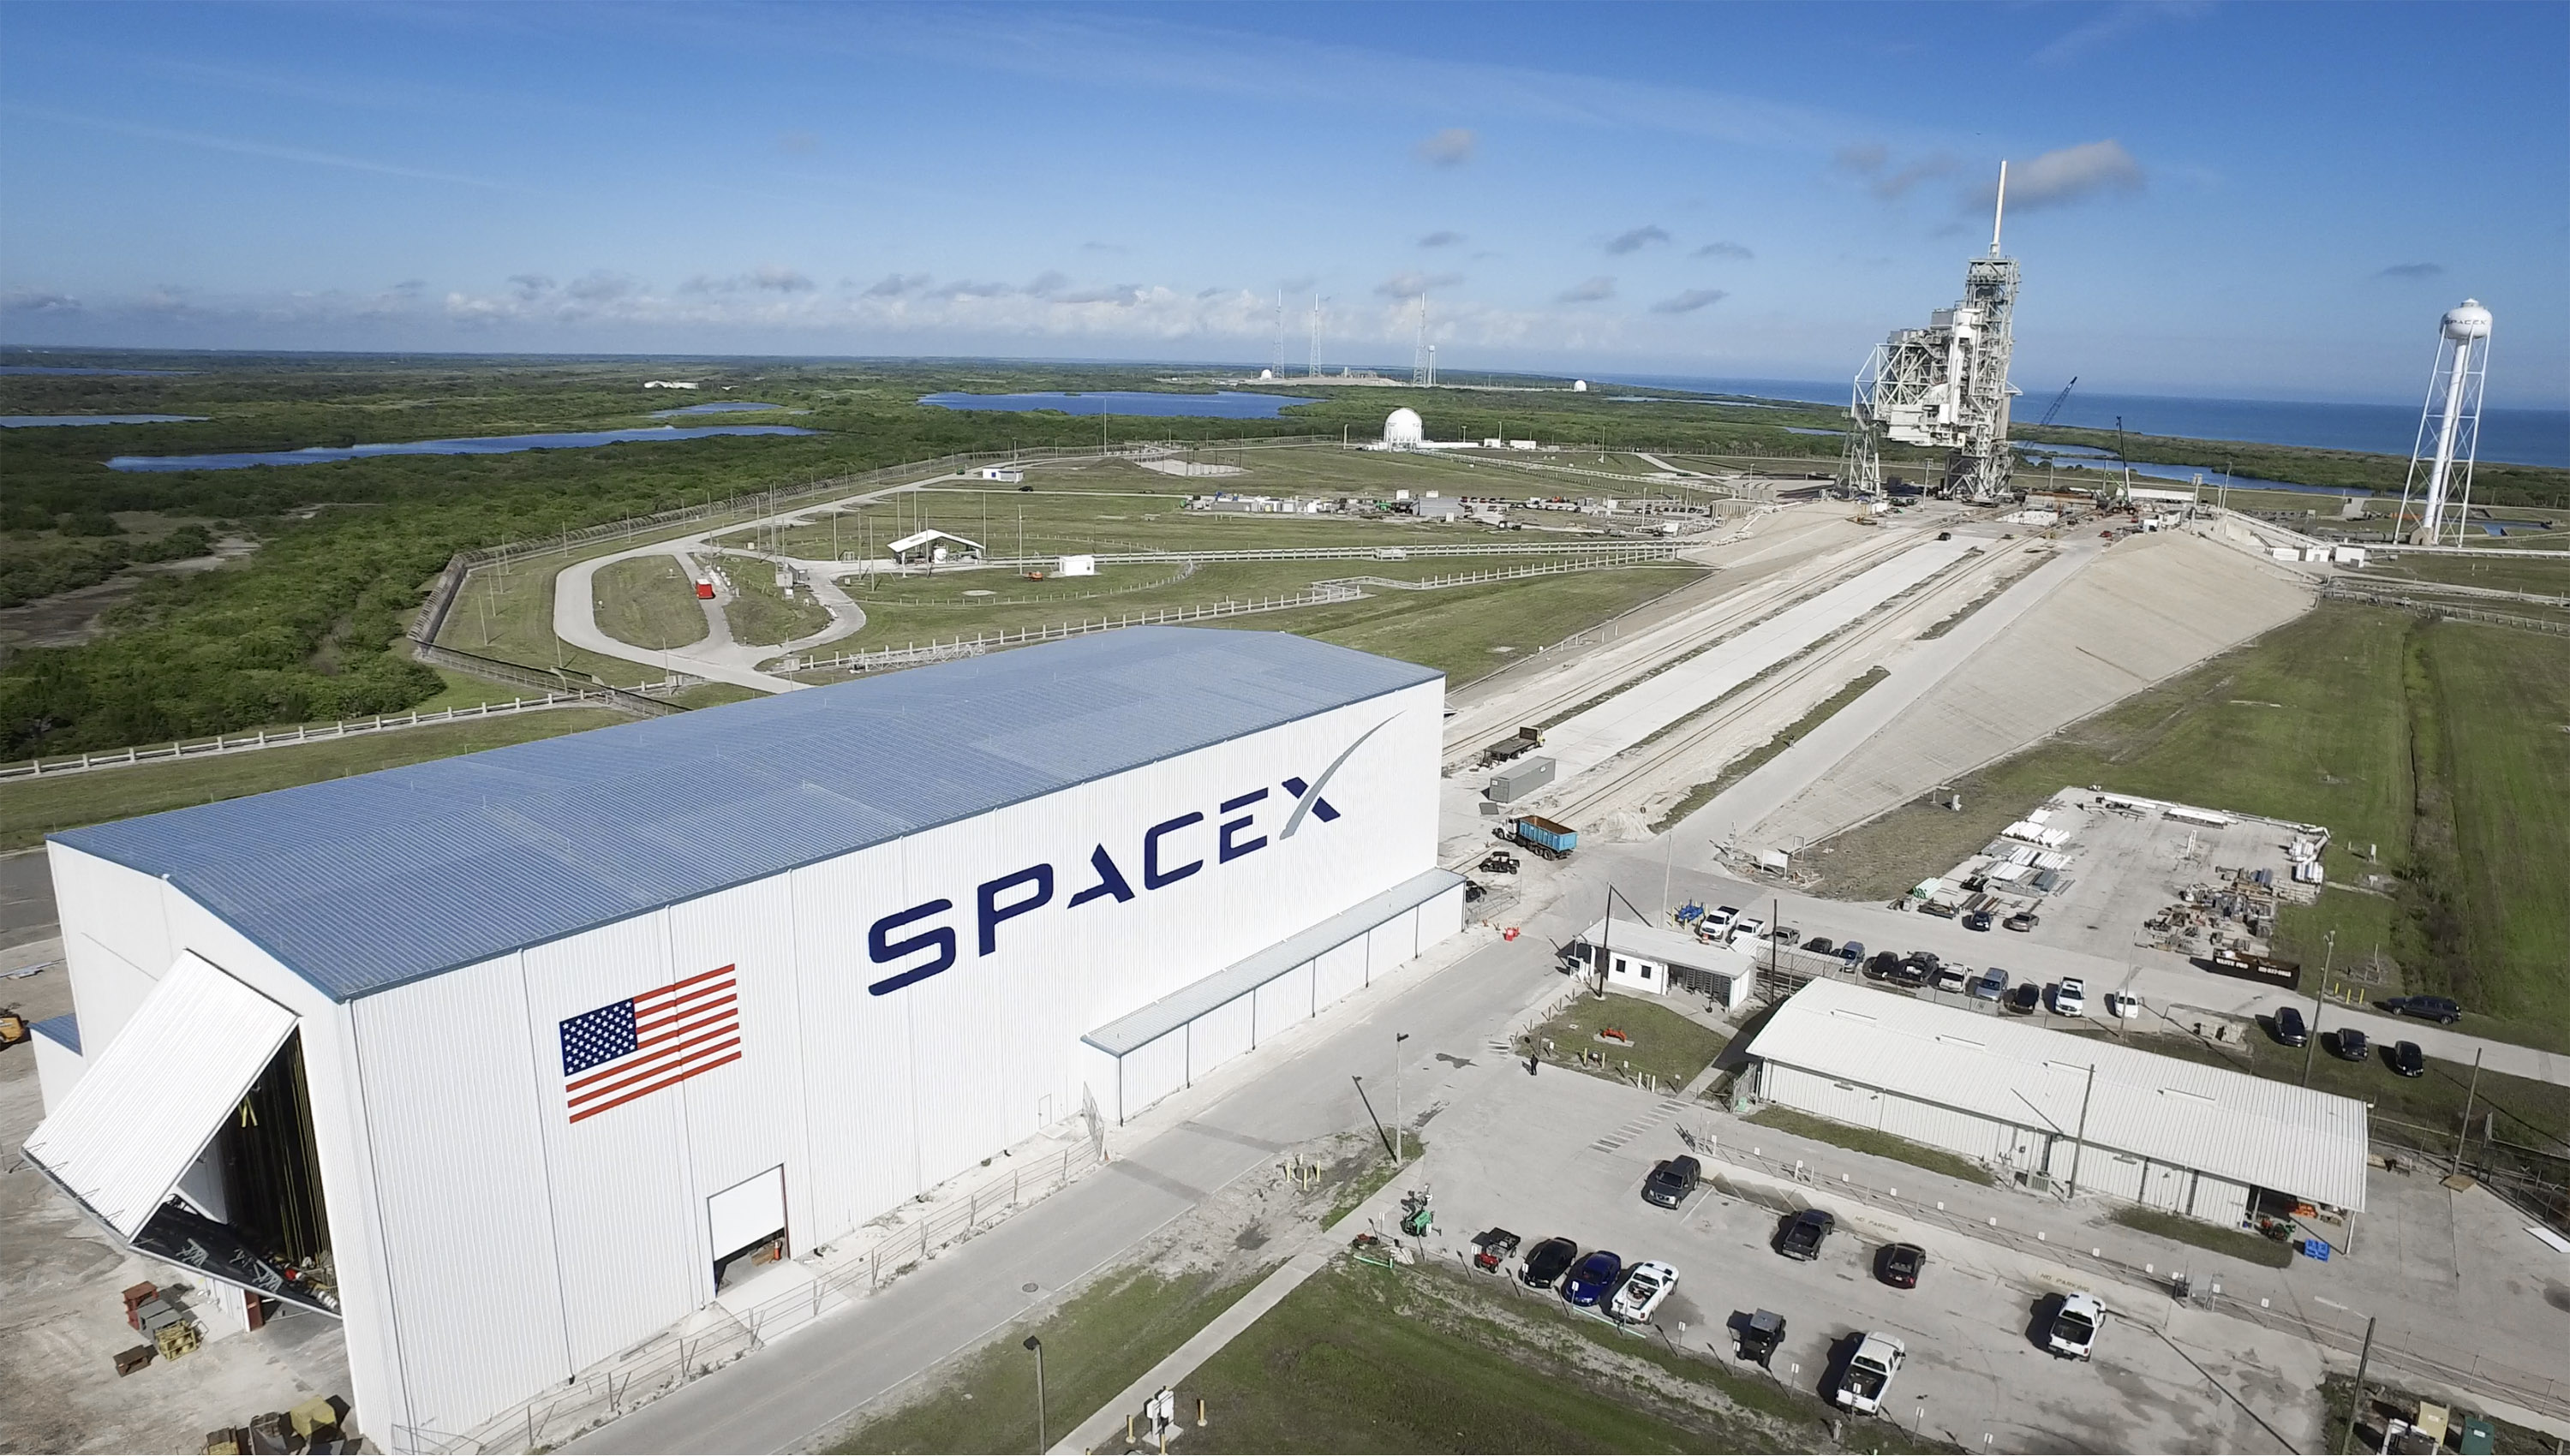 Spacex storage hangar